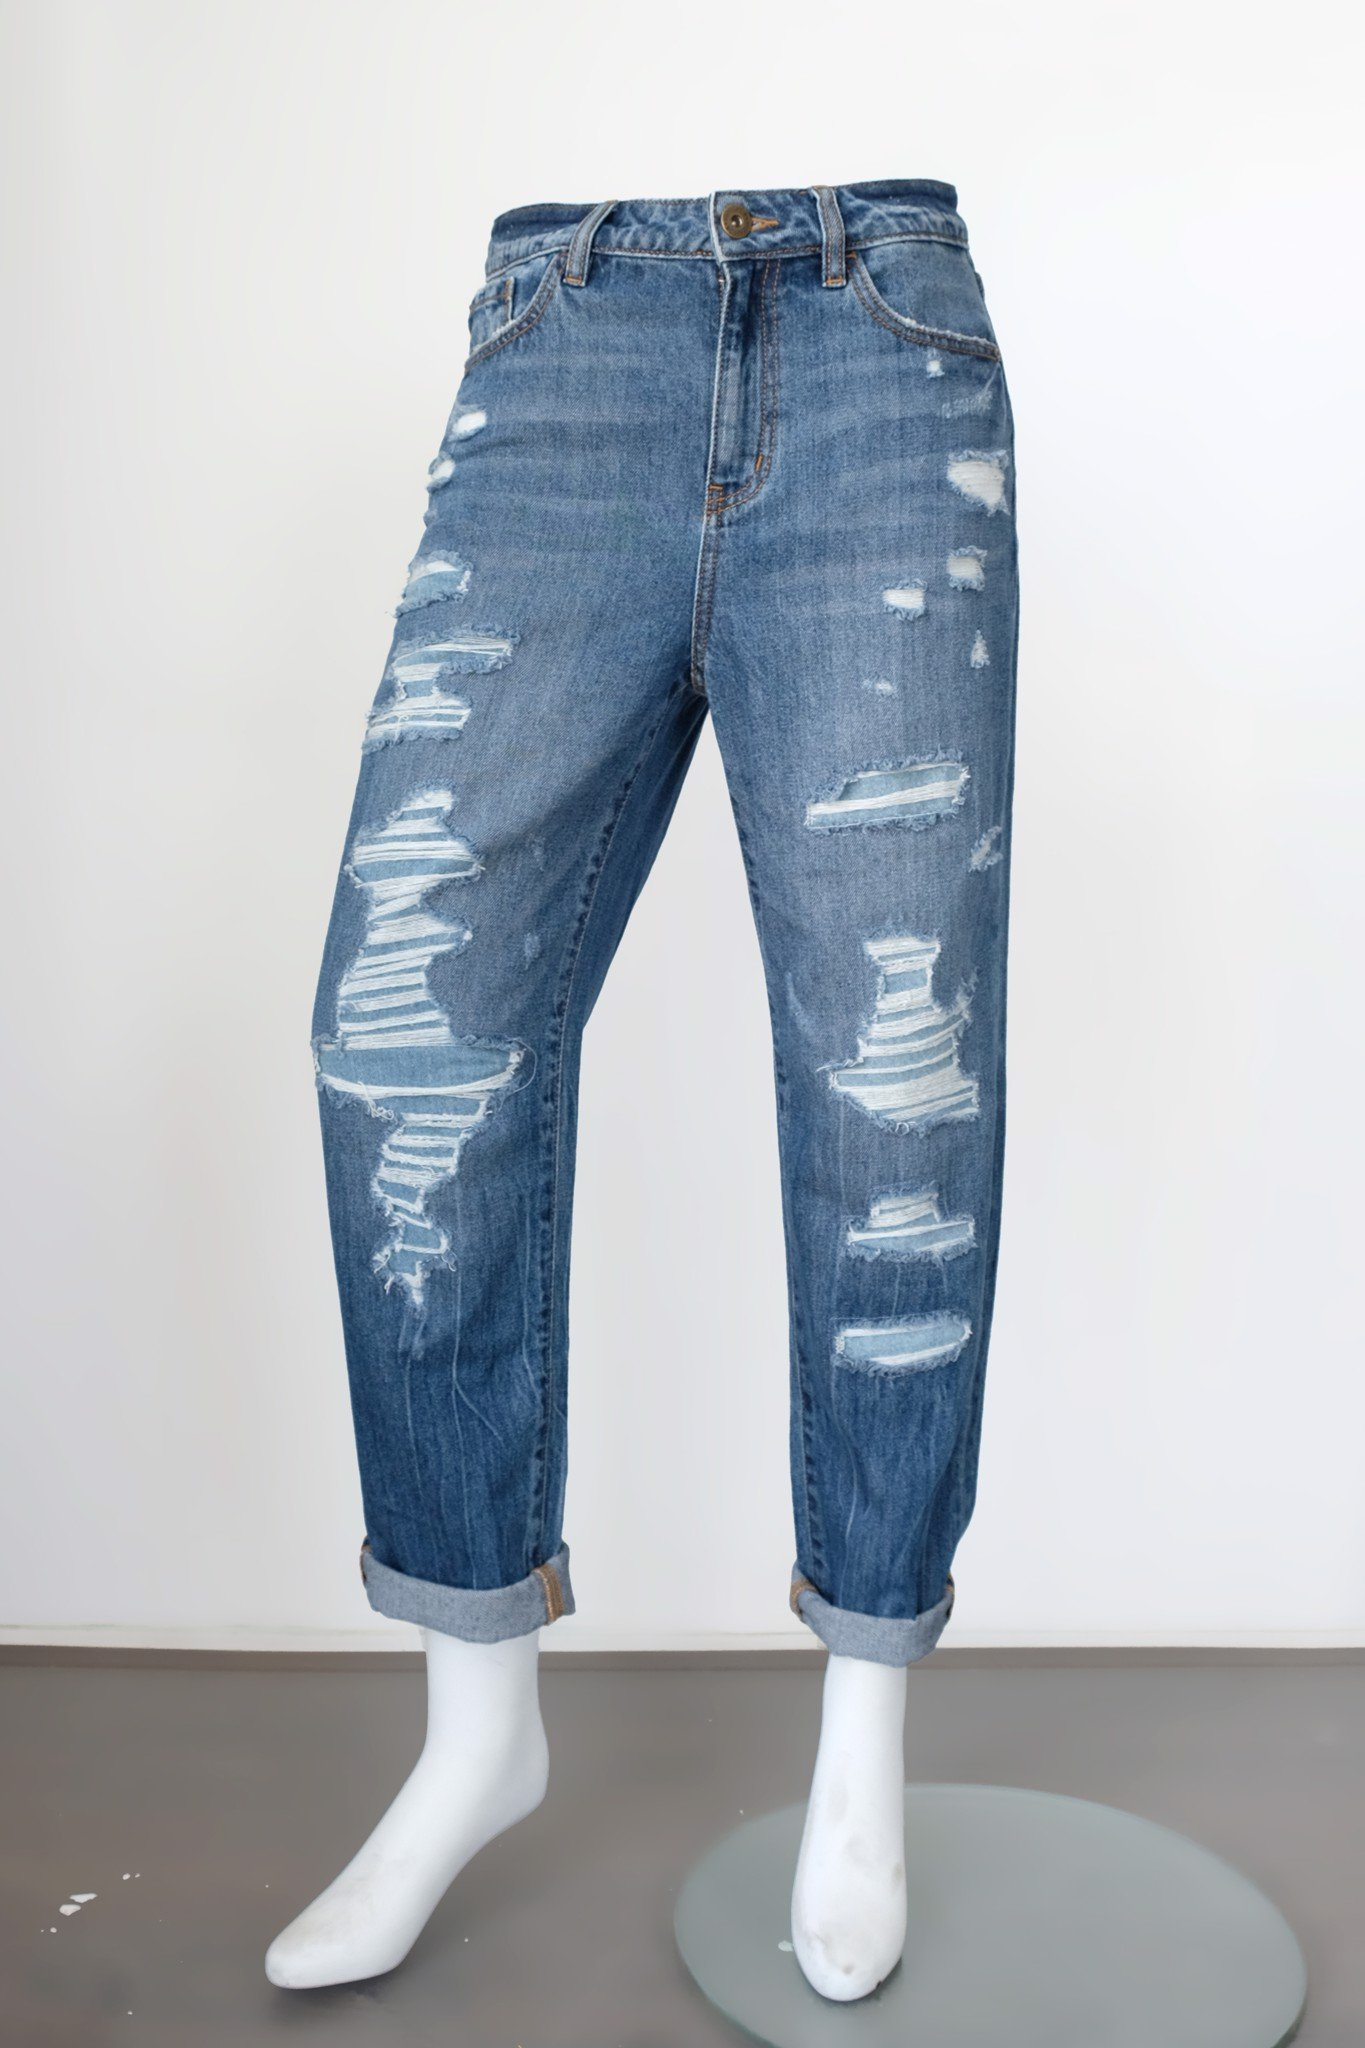 Quần jeans nữ dáng straight - 219WD1083A1950